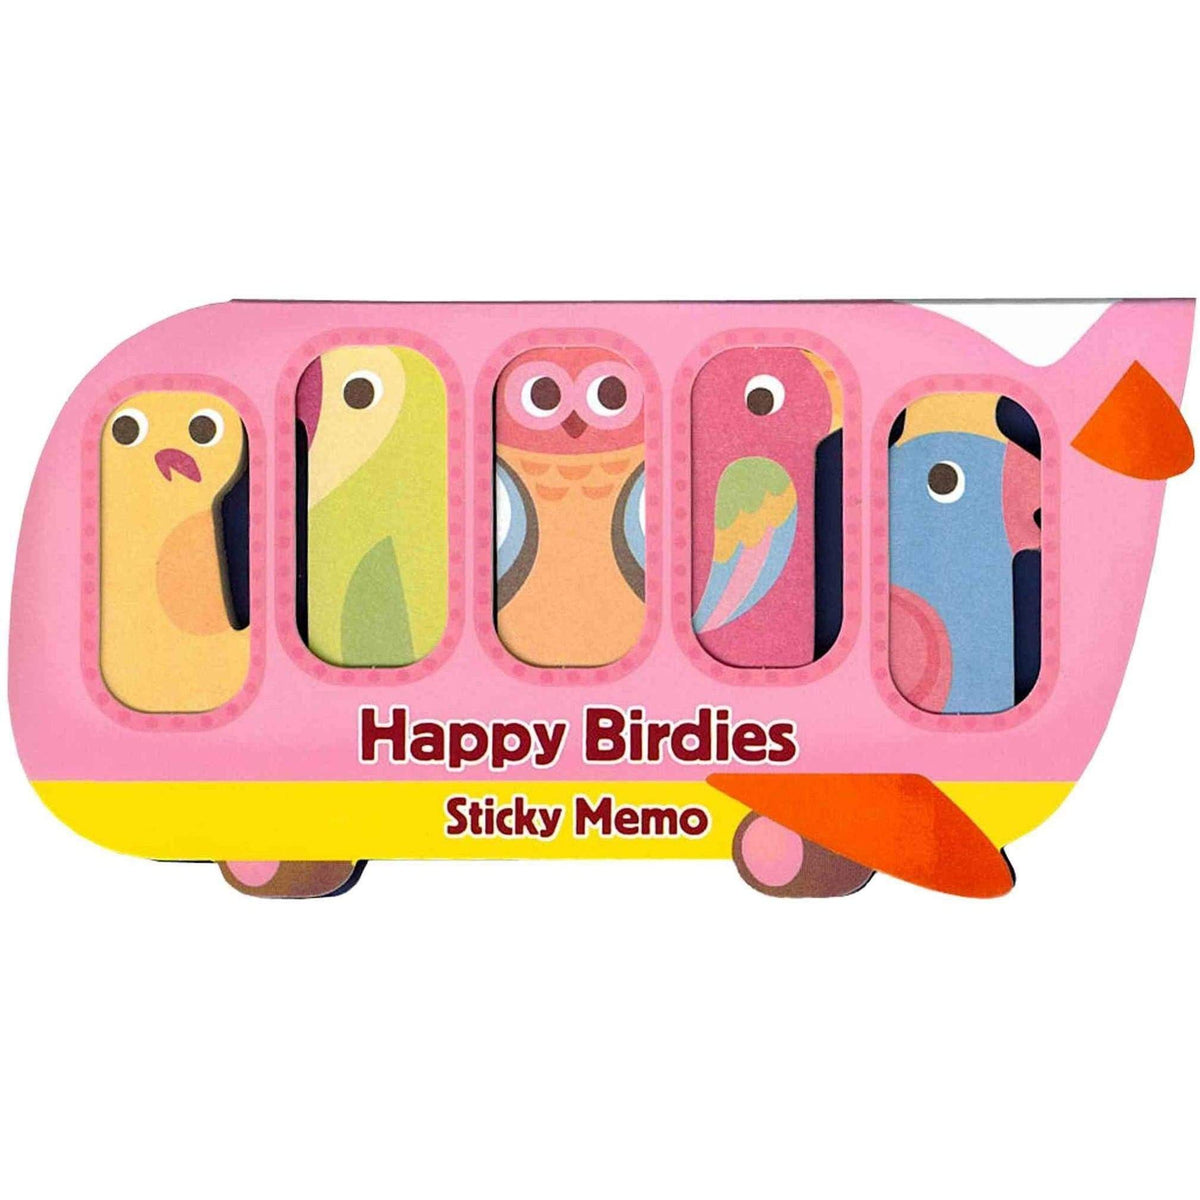 Sticky Memos Tallyho Let's Go Happy Birdies